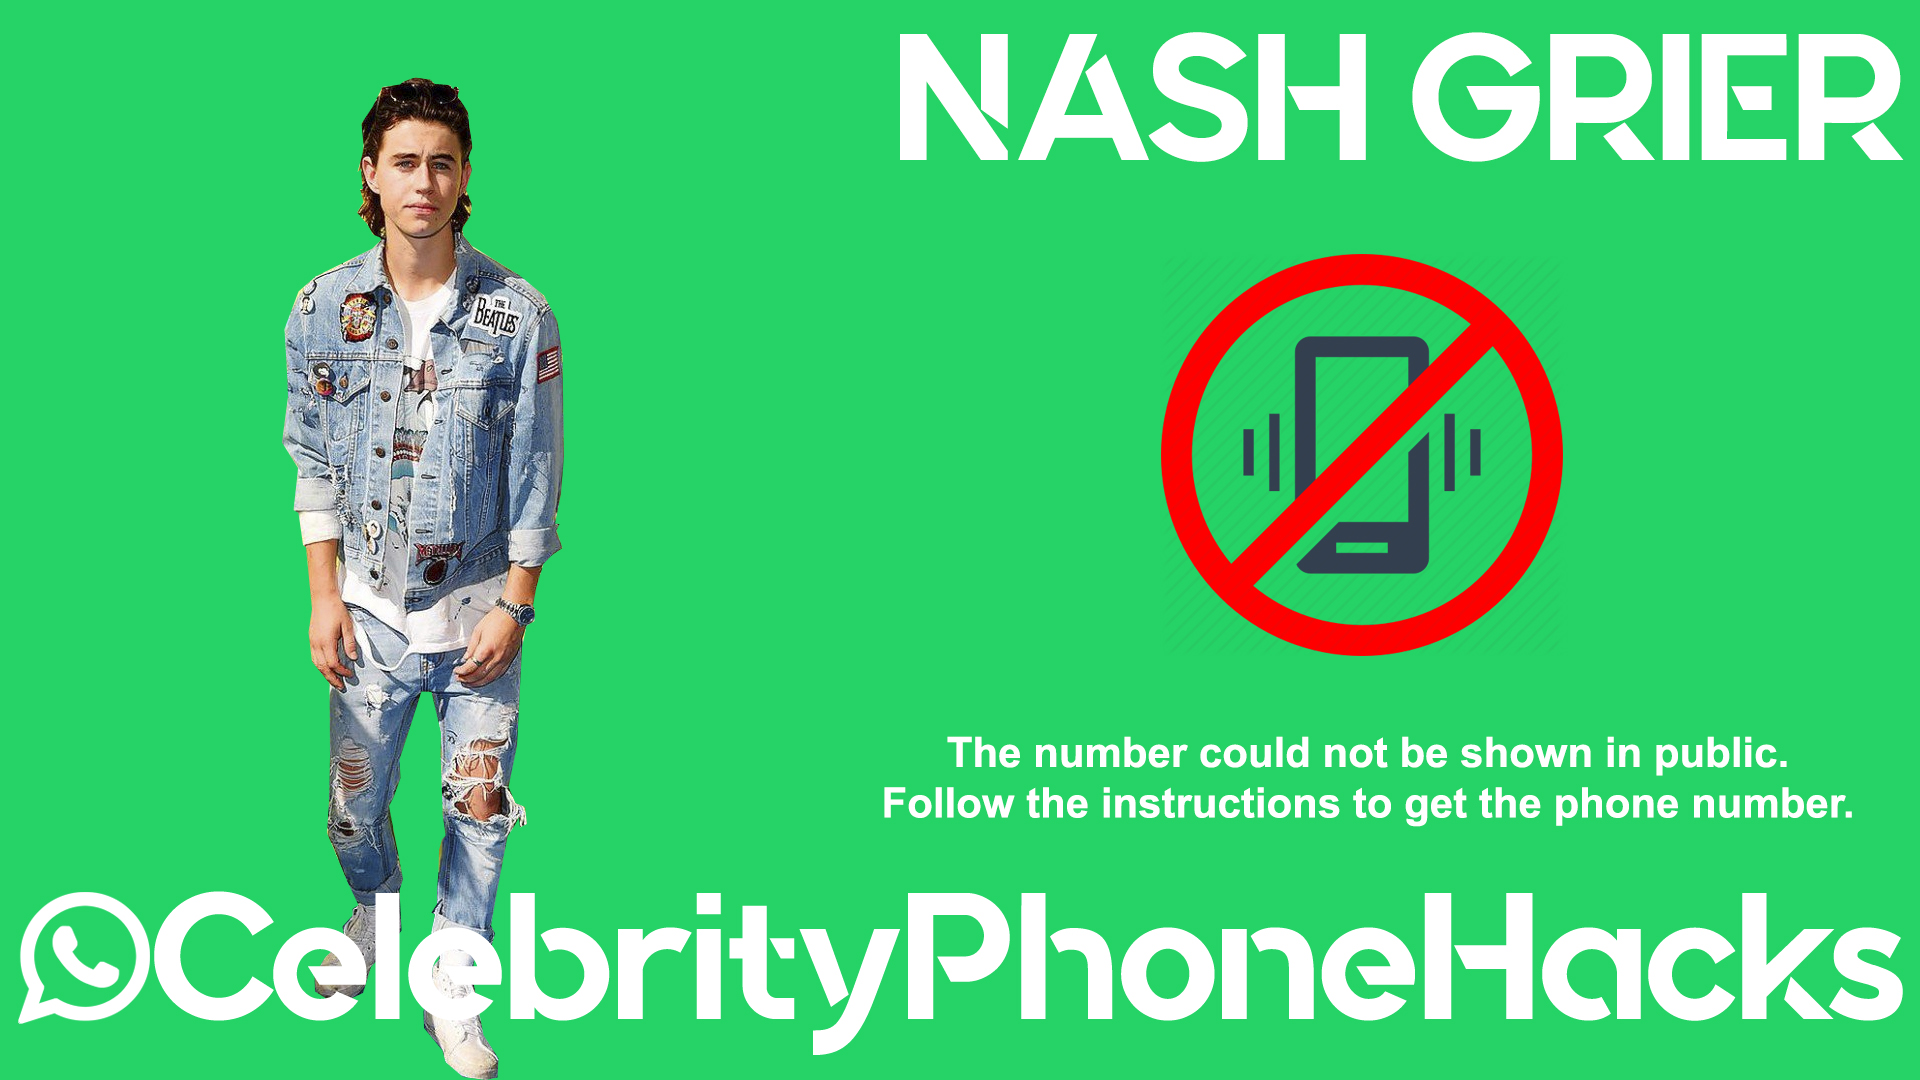 Nash Grier real phone number 2019 whatsapp hacked leaked